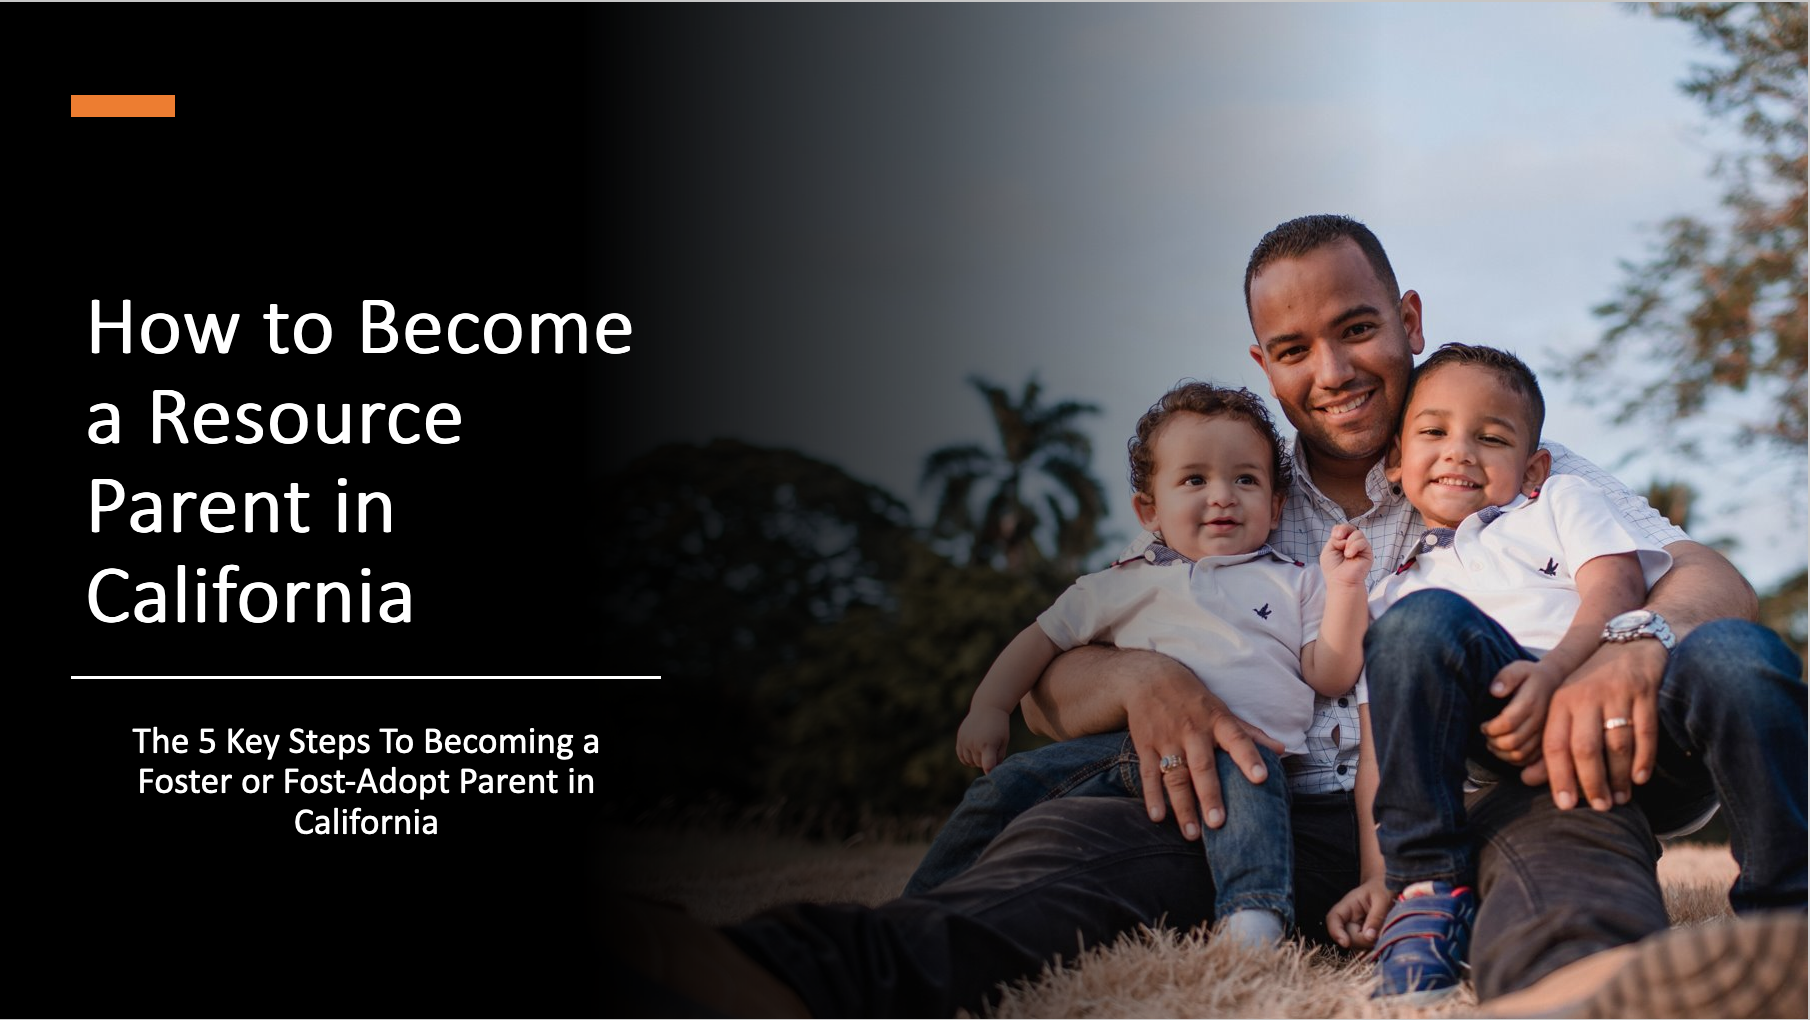 How to Become a Resource Parent in California: The 5 Key Steps To Becoming a Foster or Fost-Adopt Parent in California